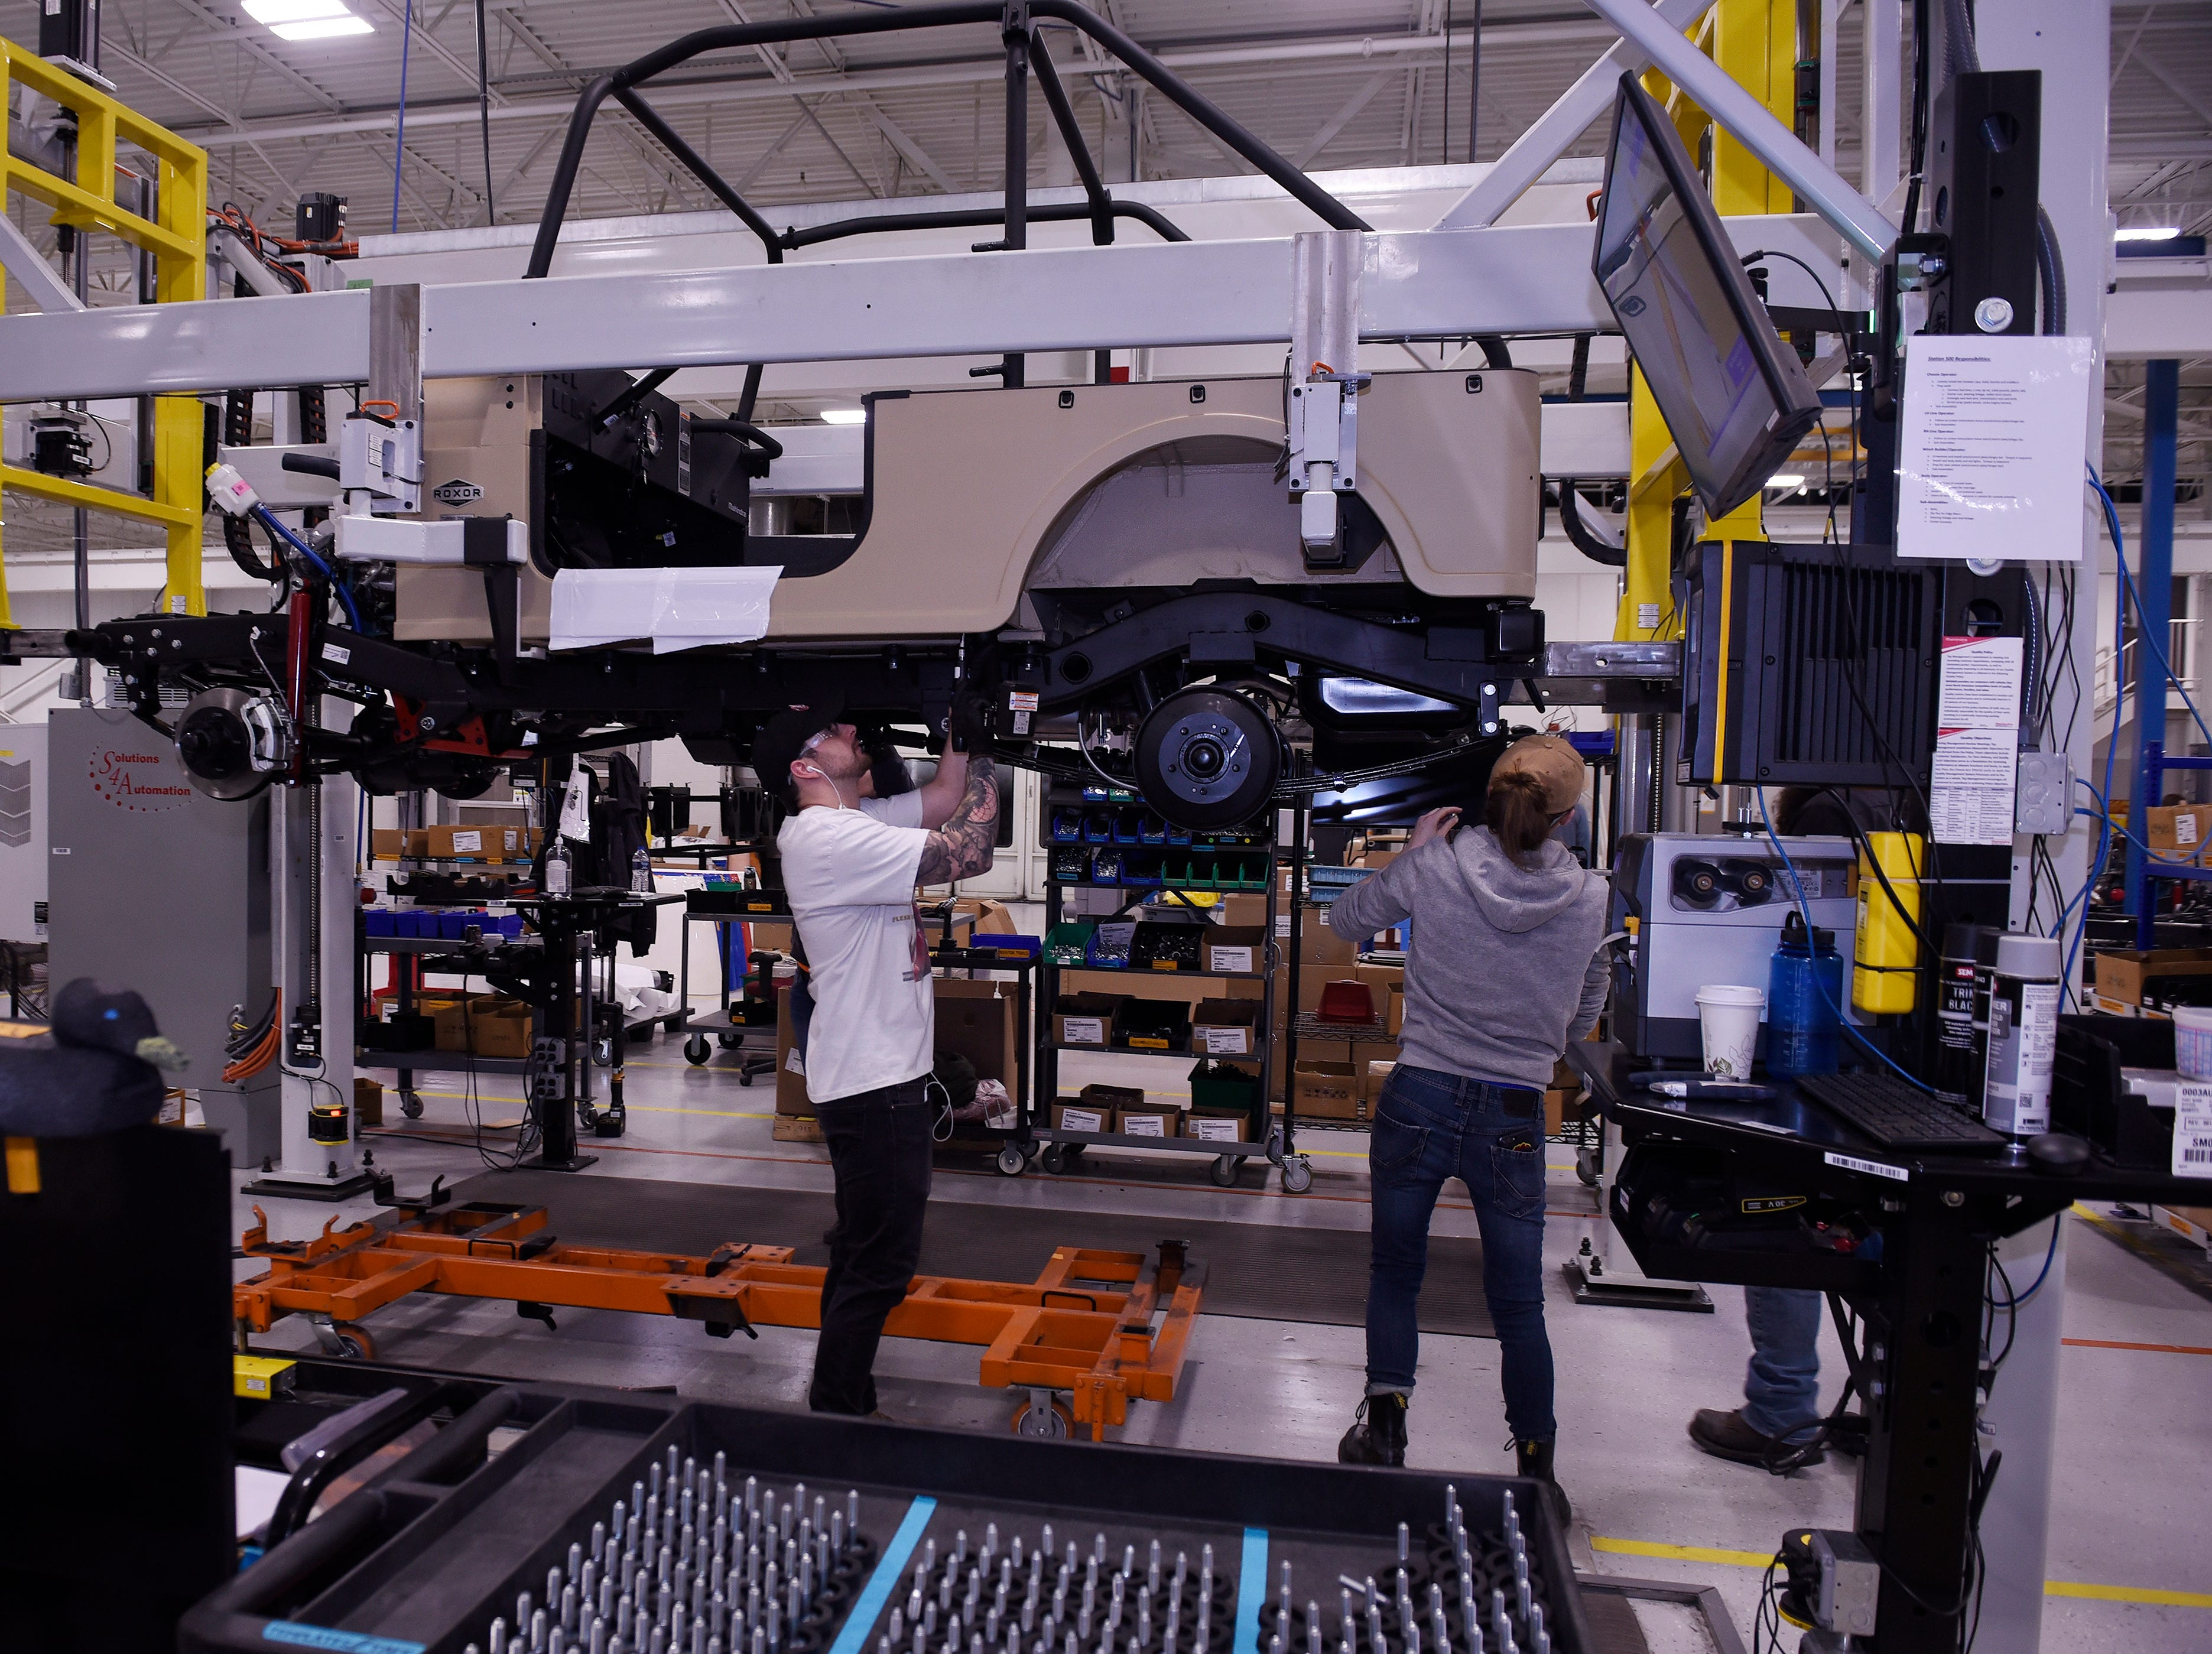 Dylan Christopher, 24, left, installs a chassis at the Mahindra automotive plant in Auburn Hills, March 4, 2019.